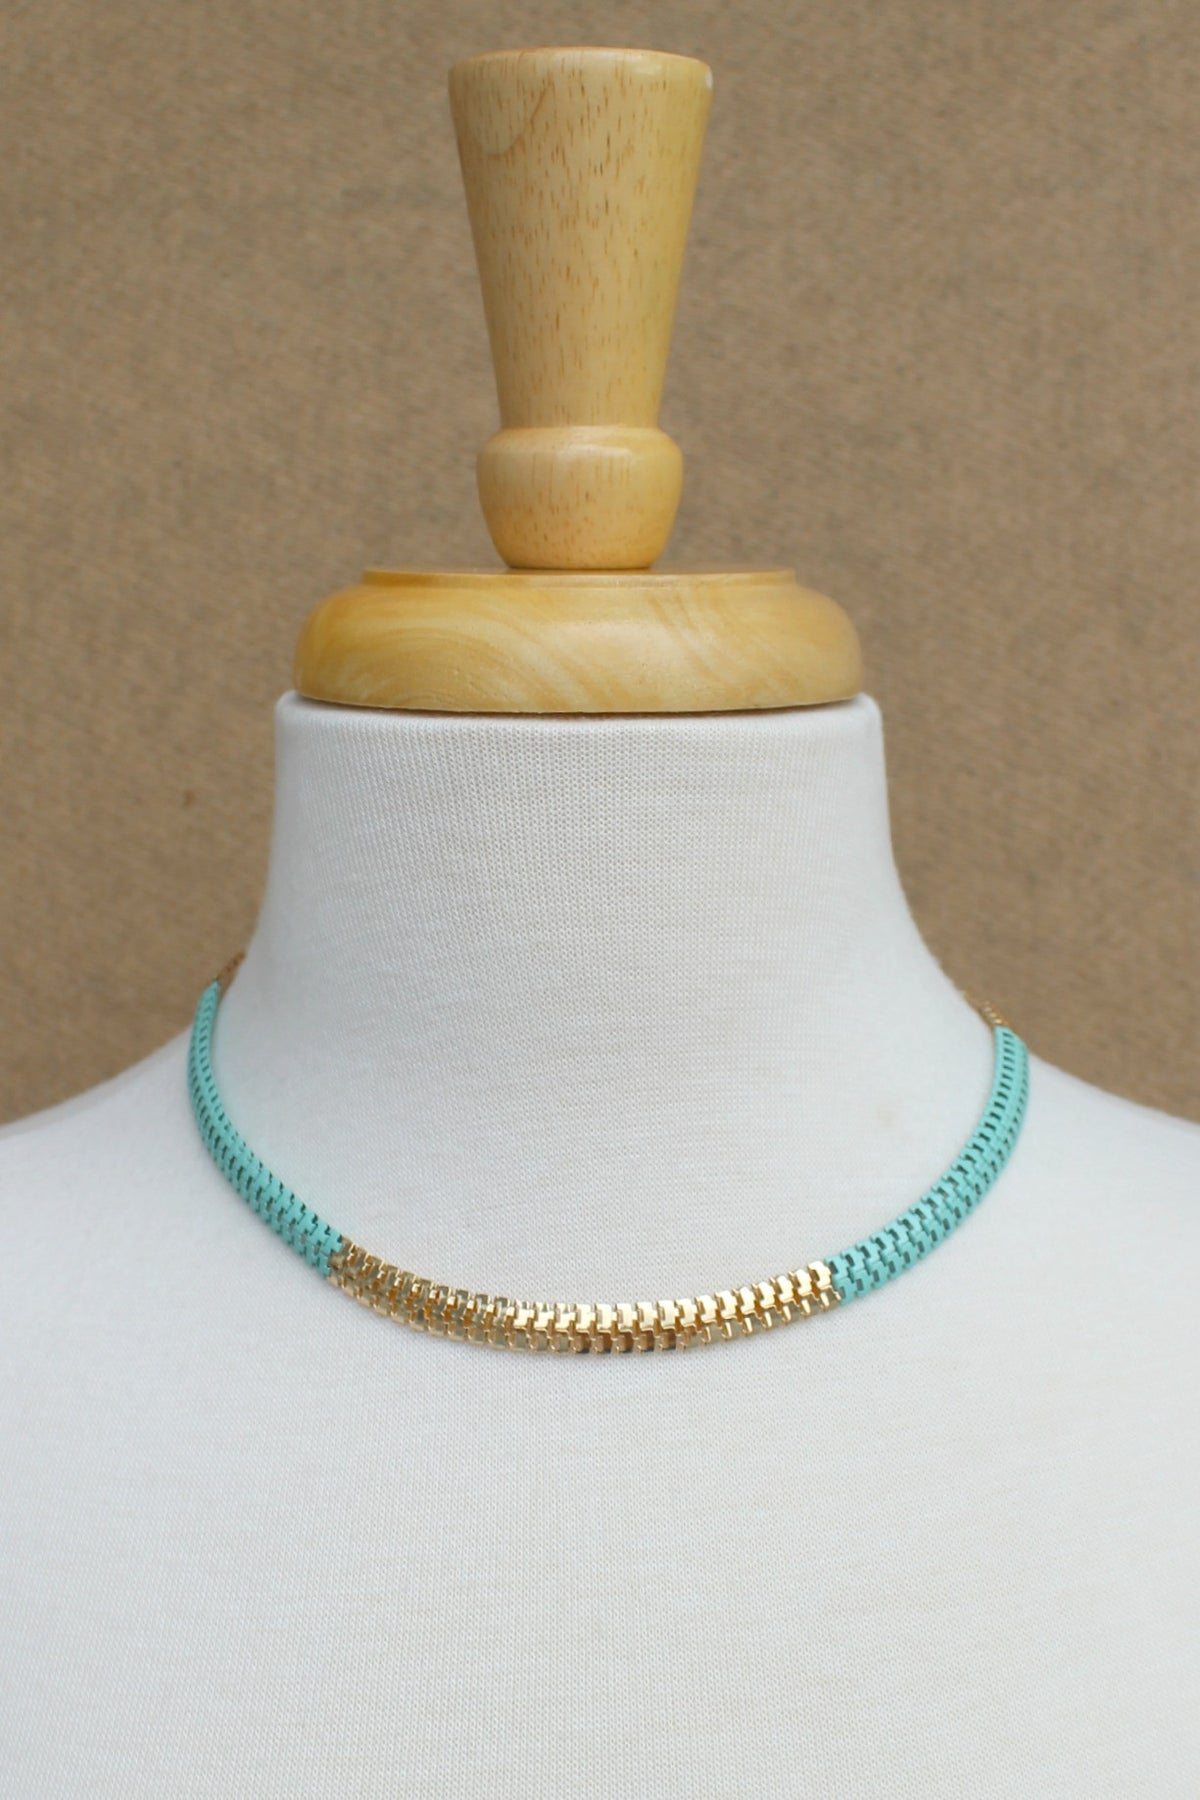 Colorblock Serpentine Necklace, Turquoise